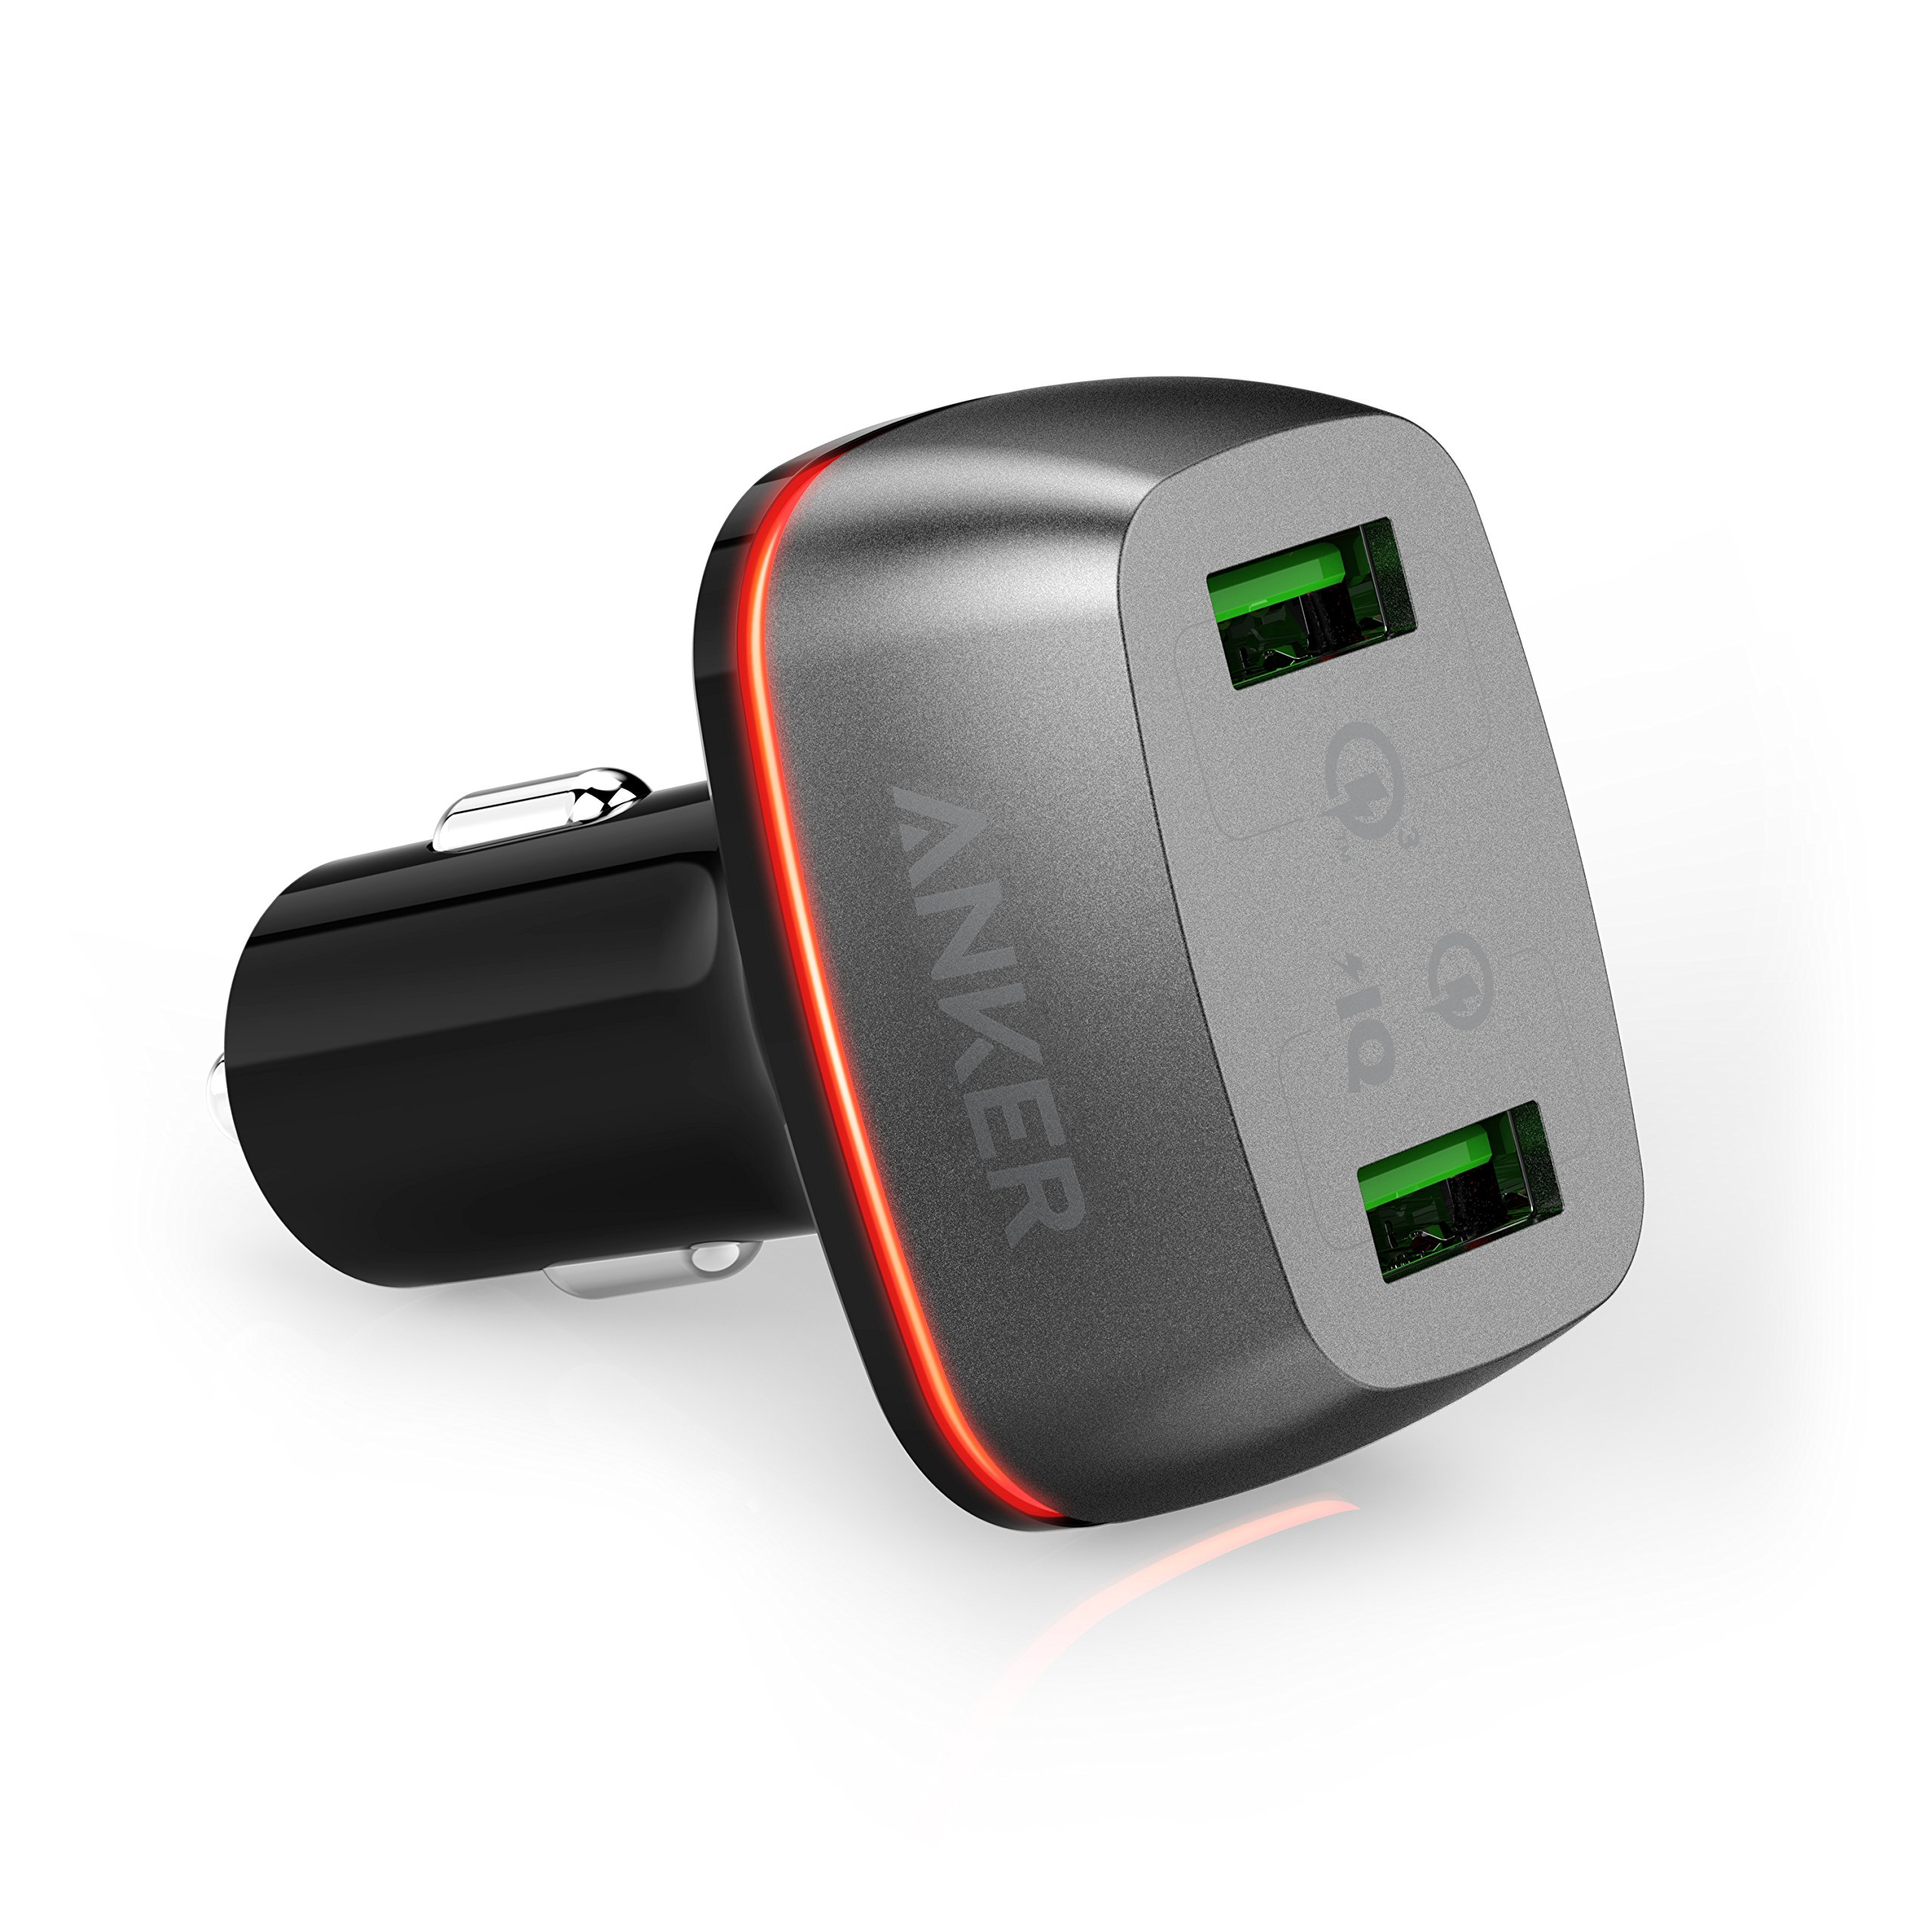 Anker Quick Charge 3.0 42W Dual USB Car Charger, PowerDrive+ 2 for Galaxy S7/S6/Edge/Plus, Note 5/4 and PowerIQ for iPhone 7/6s/Plus, iPad Pro/Air 2/mini, LG, Nexus, HTC and More